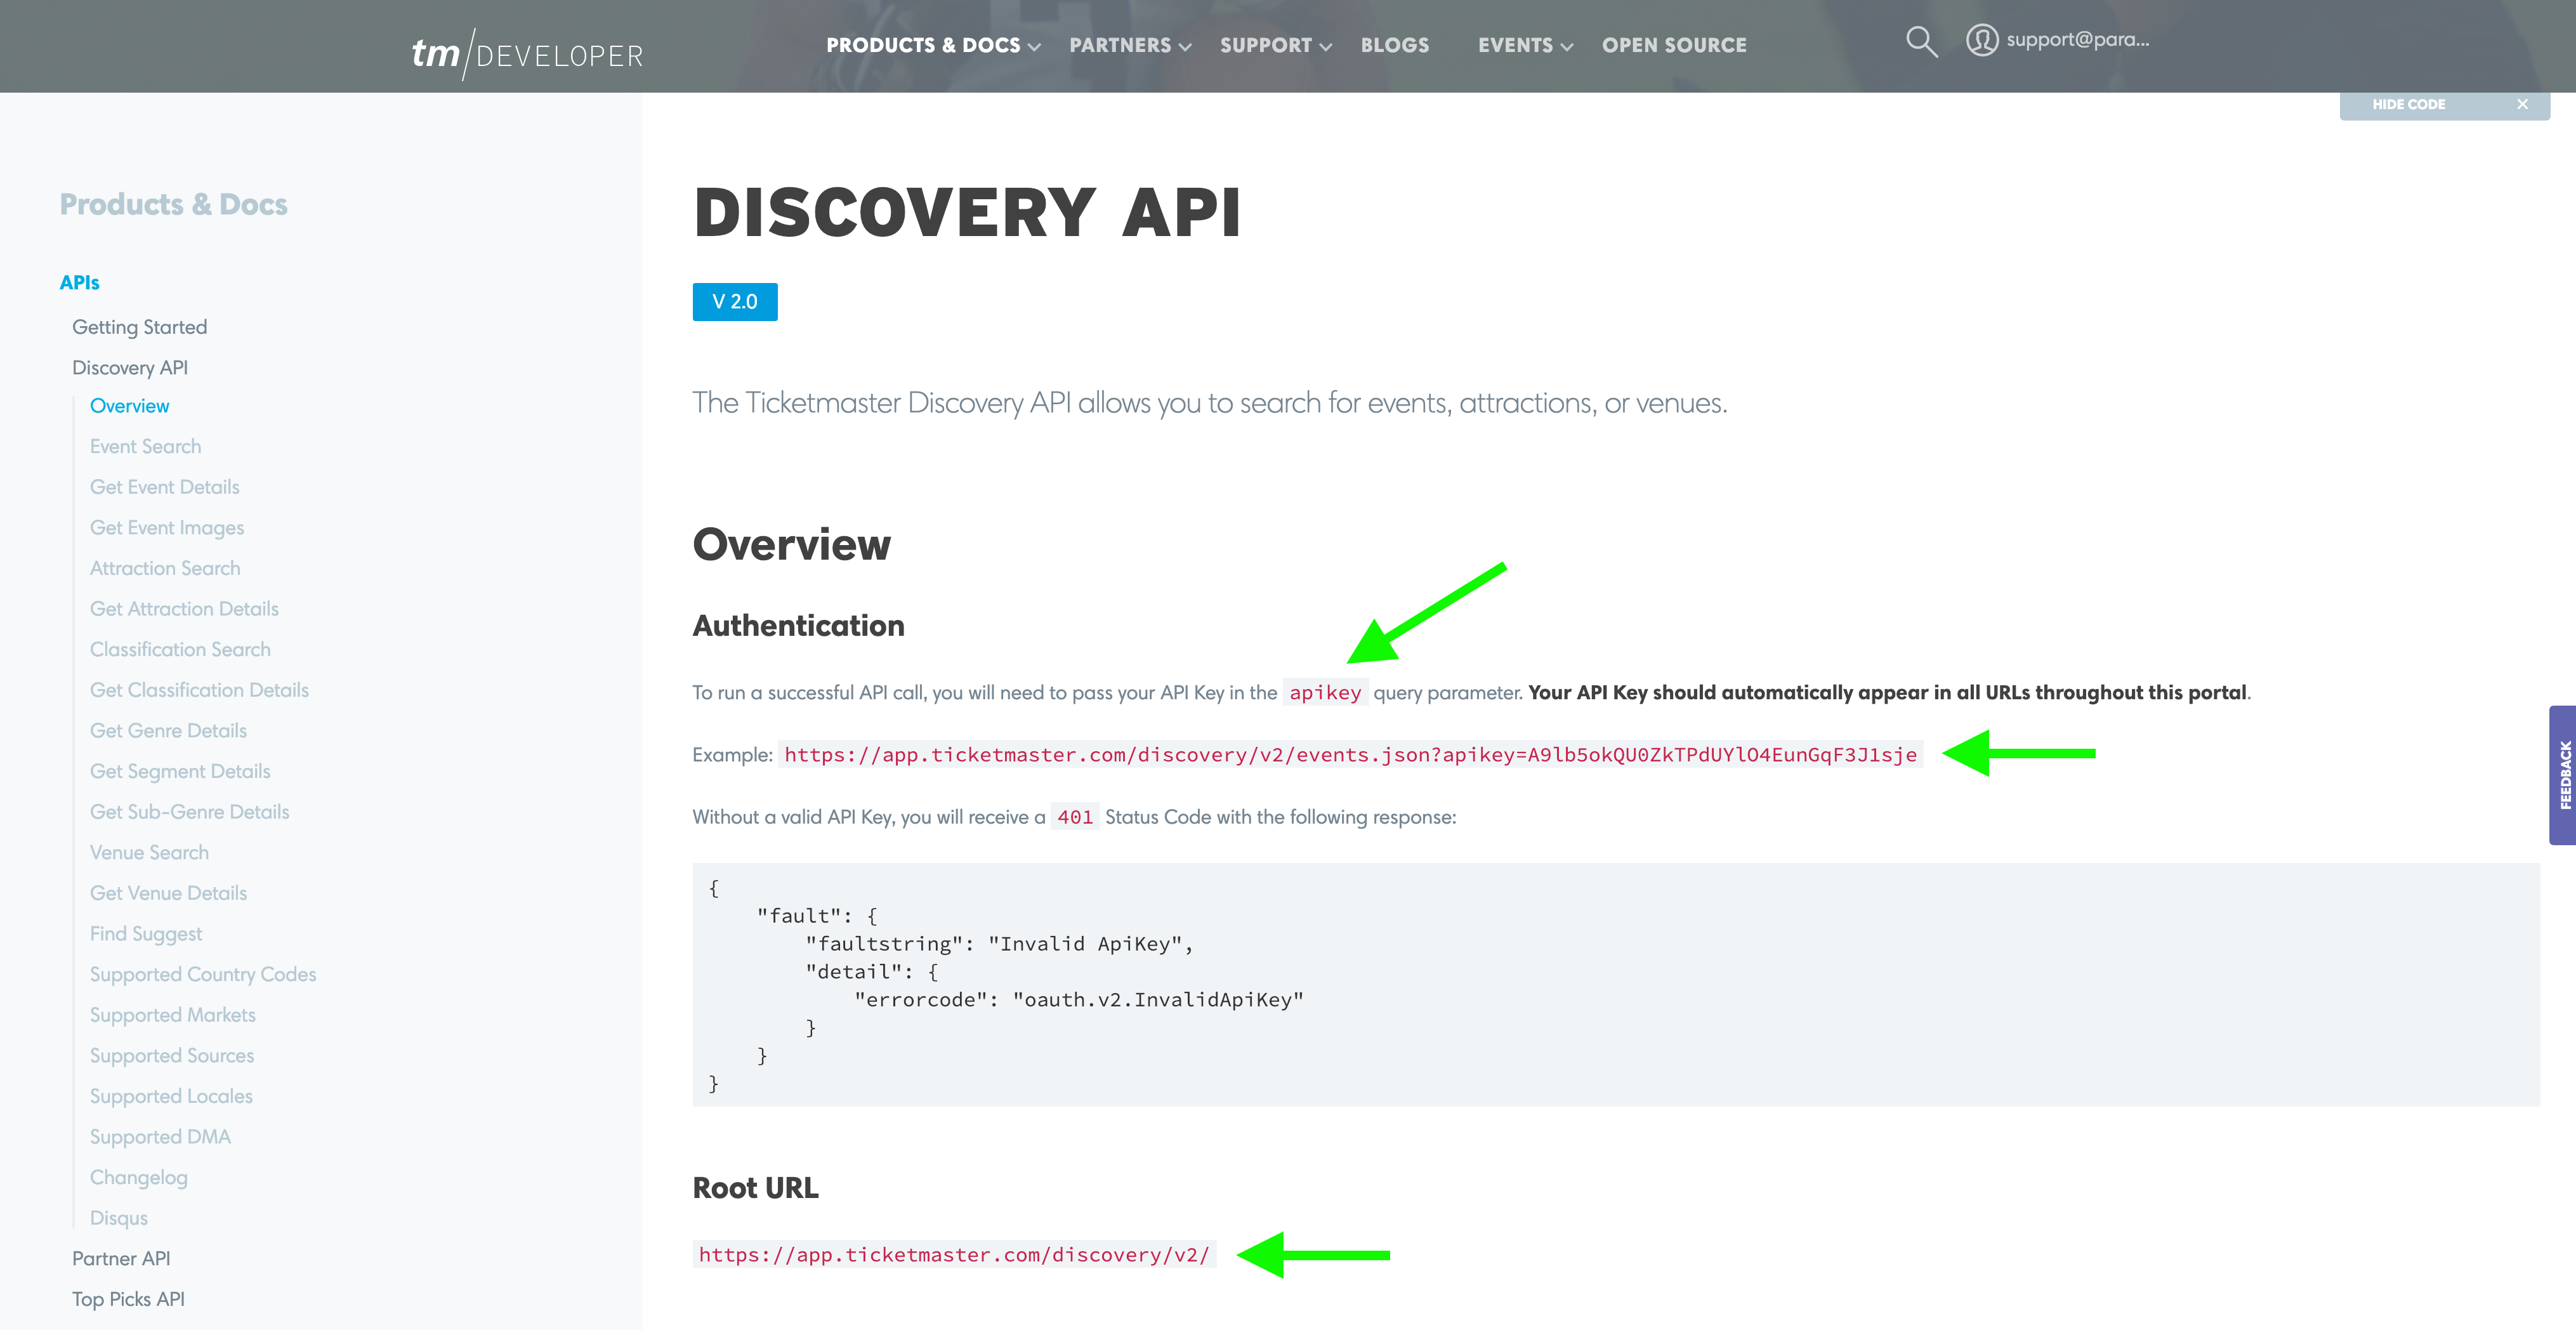 Discovery API overview section, looking at authentication details